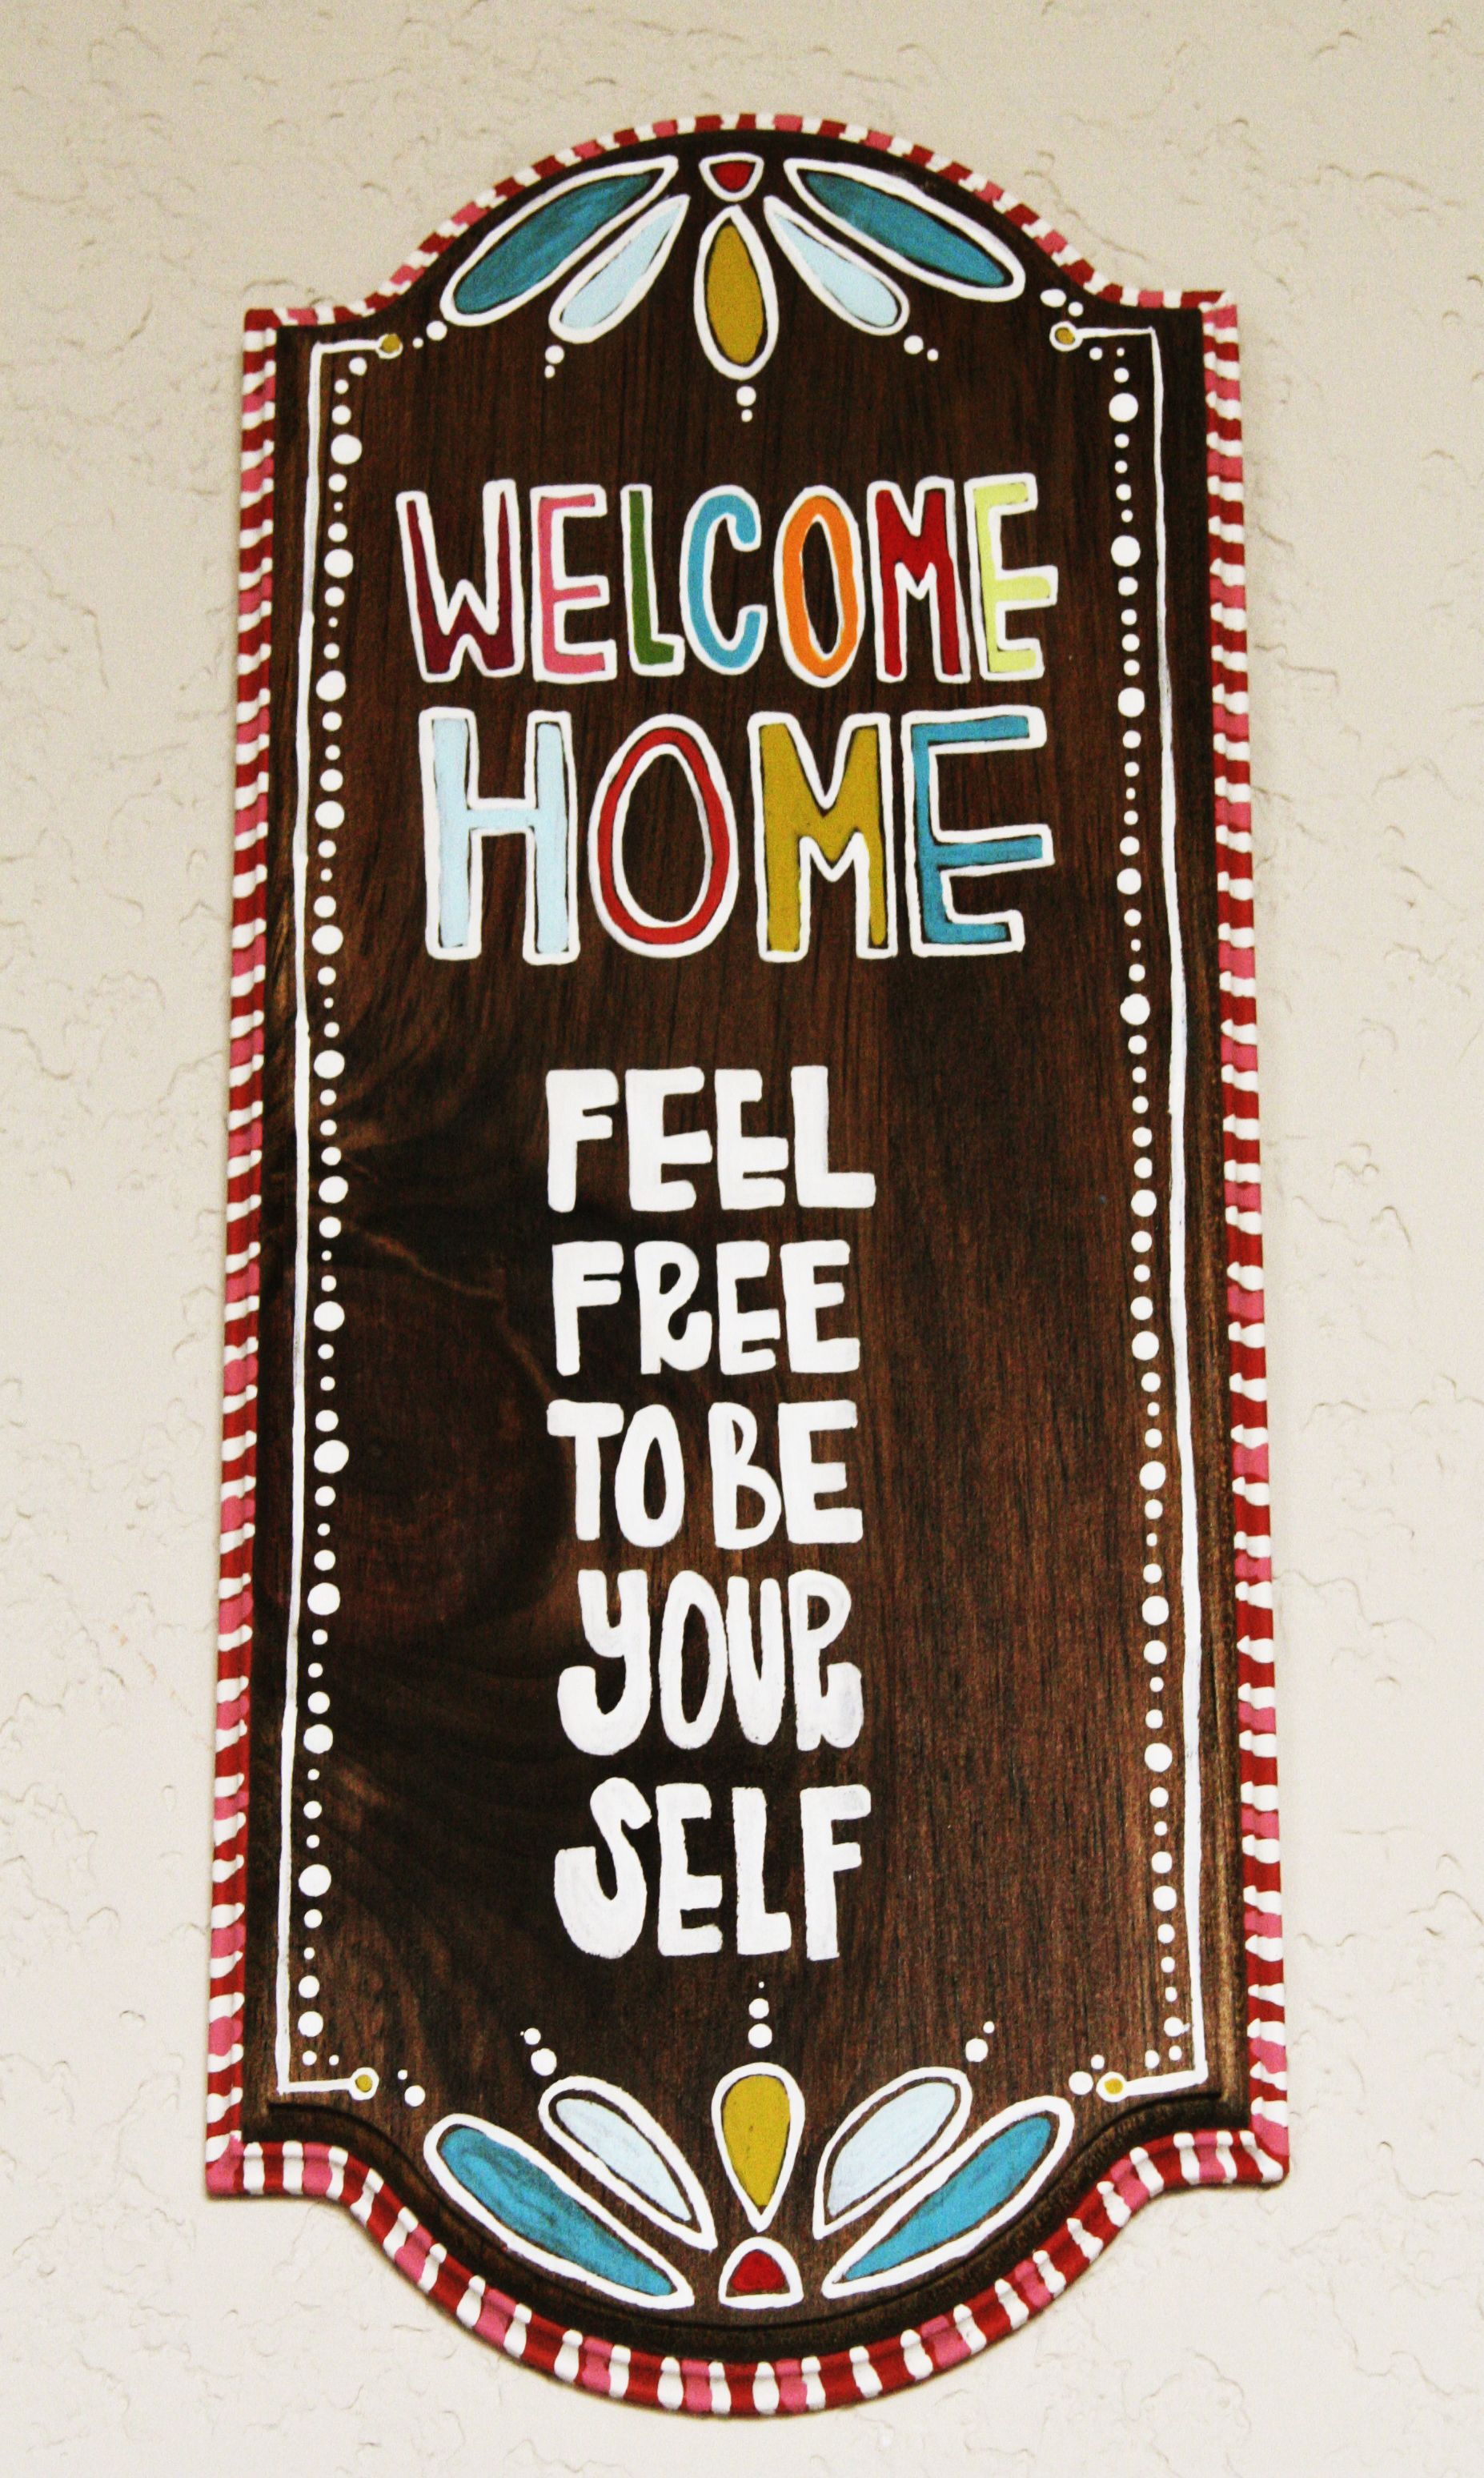 Welcome home. Feel free to be yourself | Artsy Ideas | Pinterest ...